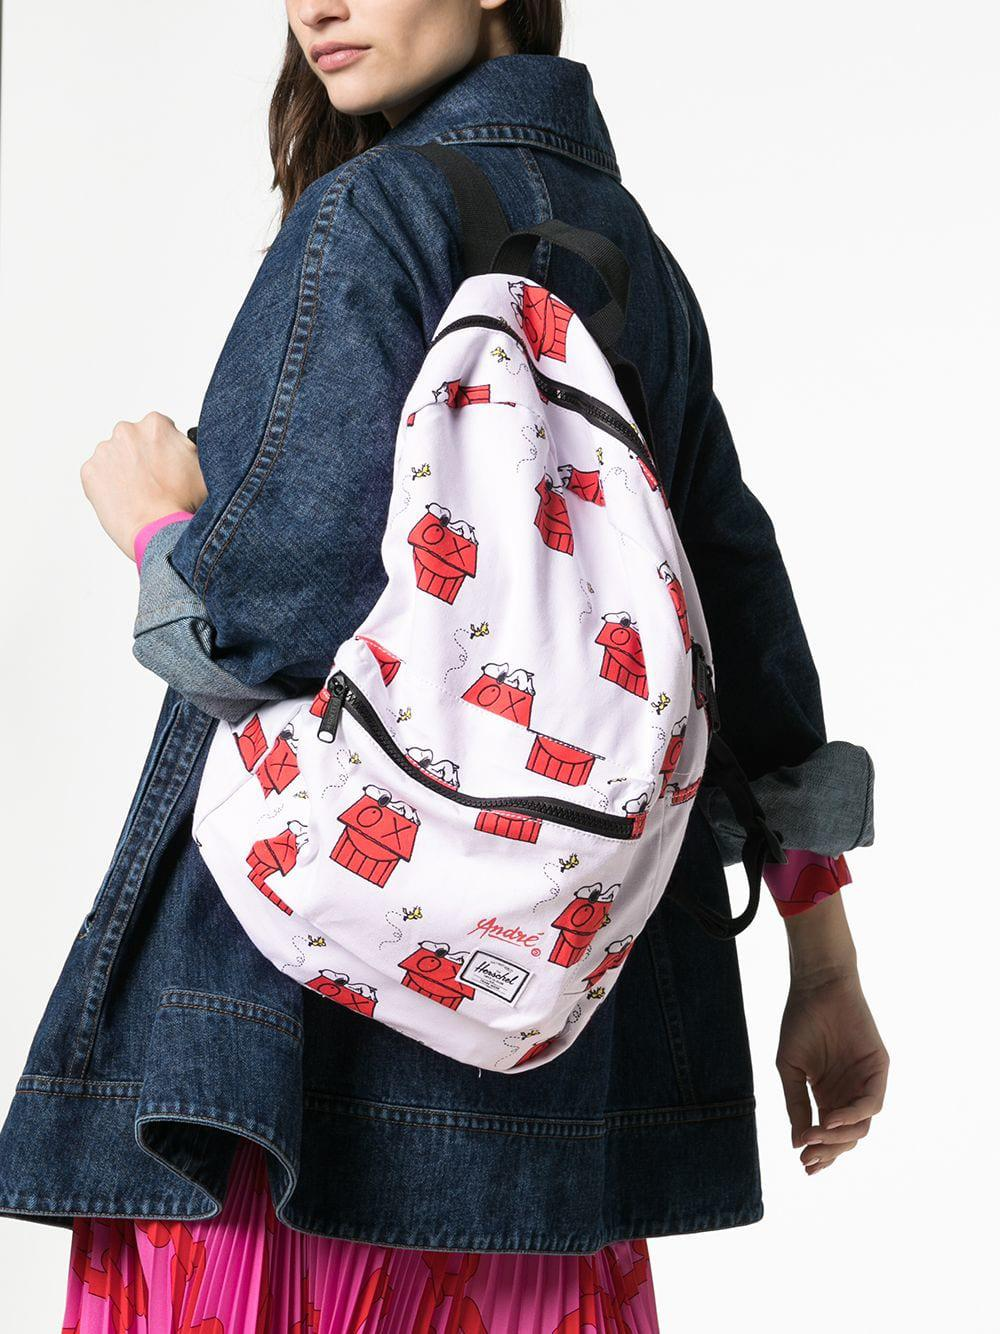 346c6b1d43 Lyst - Herschel Supply Co. White Snoopy Skate Backpack in White - Save 47%